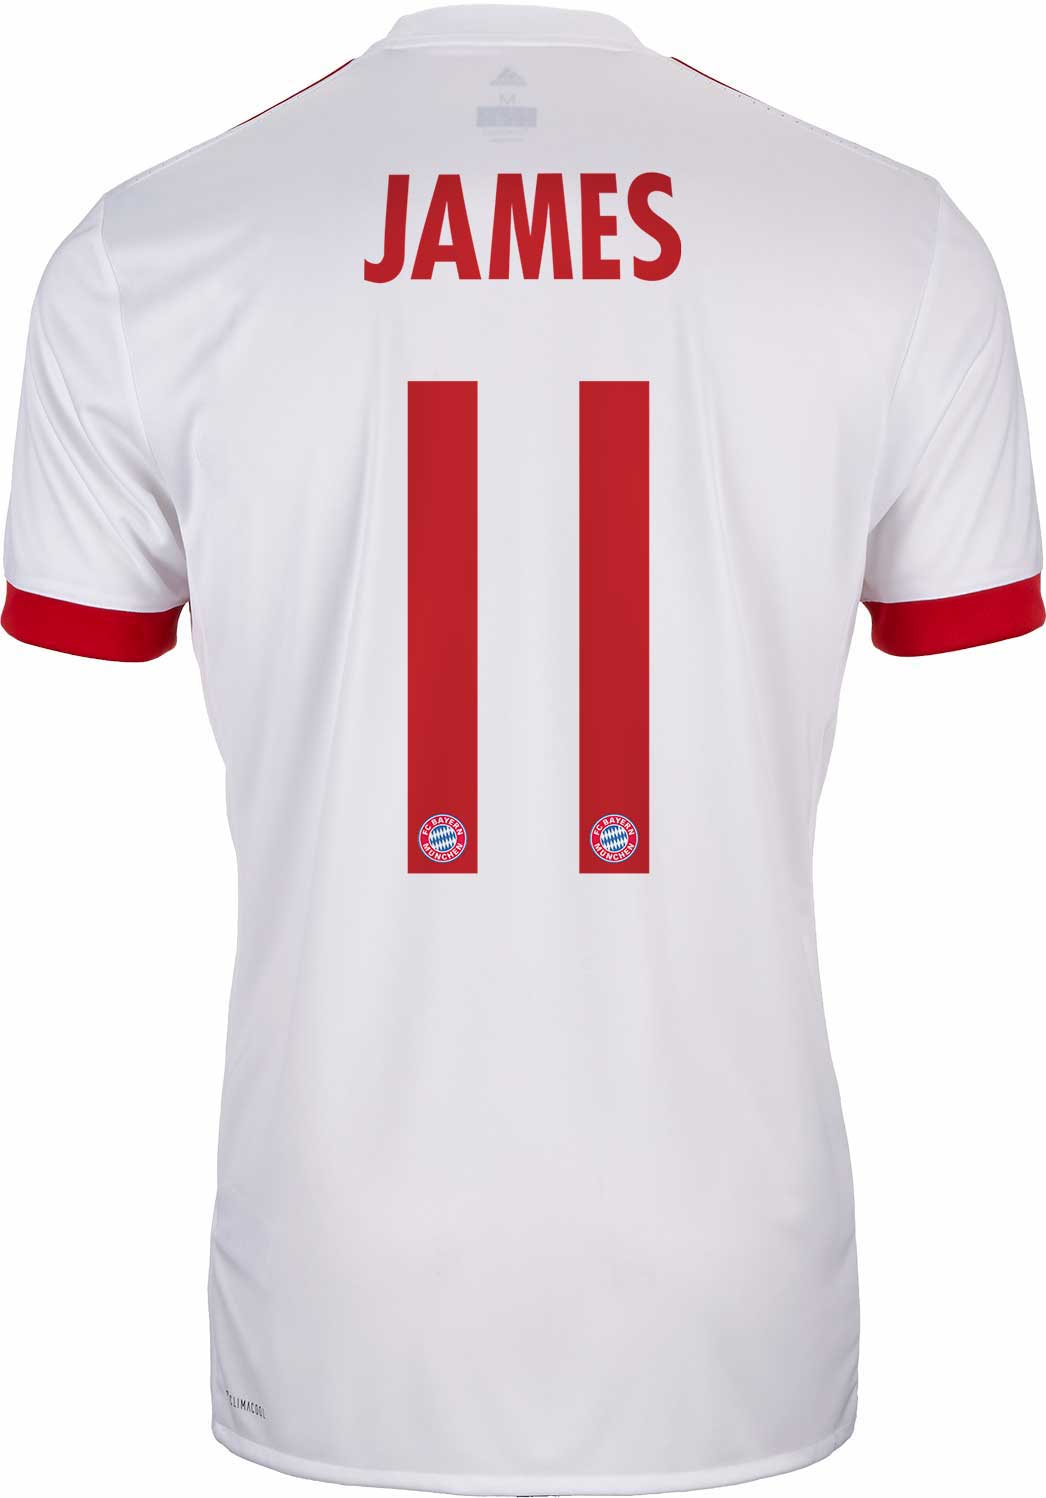 newest c6e16 e34d5 2017/18 adidas Kids James Rodriguez Bayern Munich UCL Jersey ...